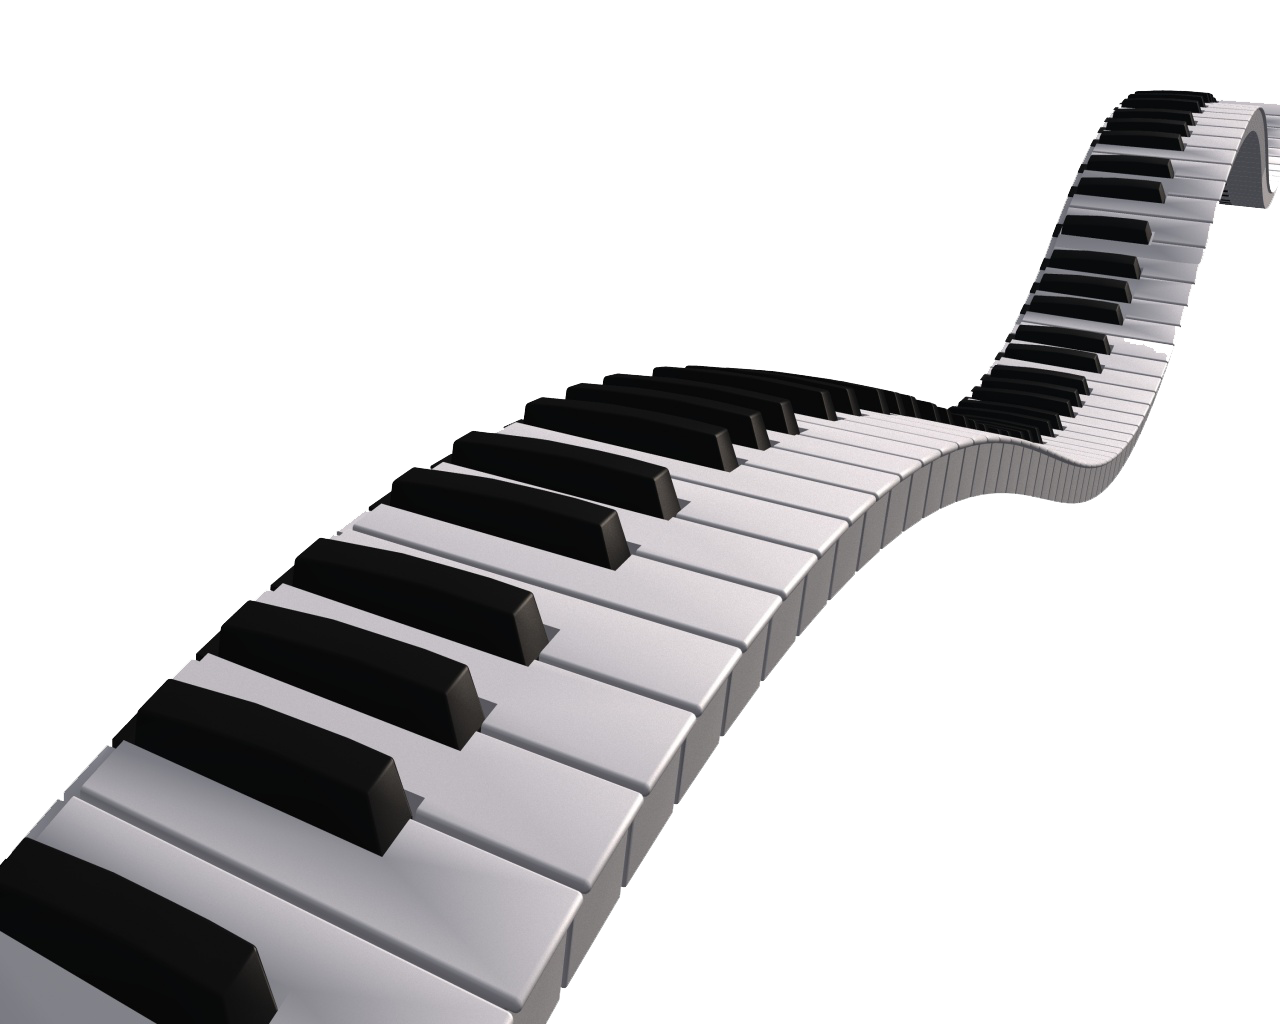 clip art transparent library Wavy piano keyboard clipart. Band and orchestra instruments